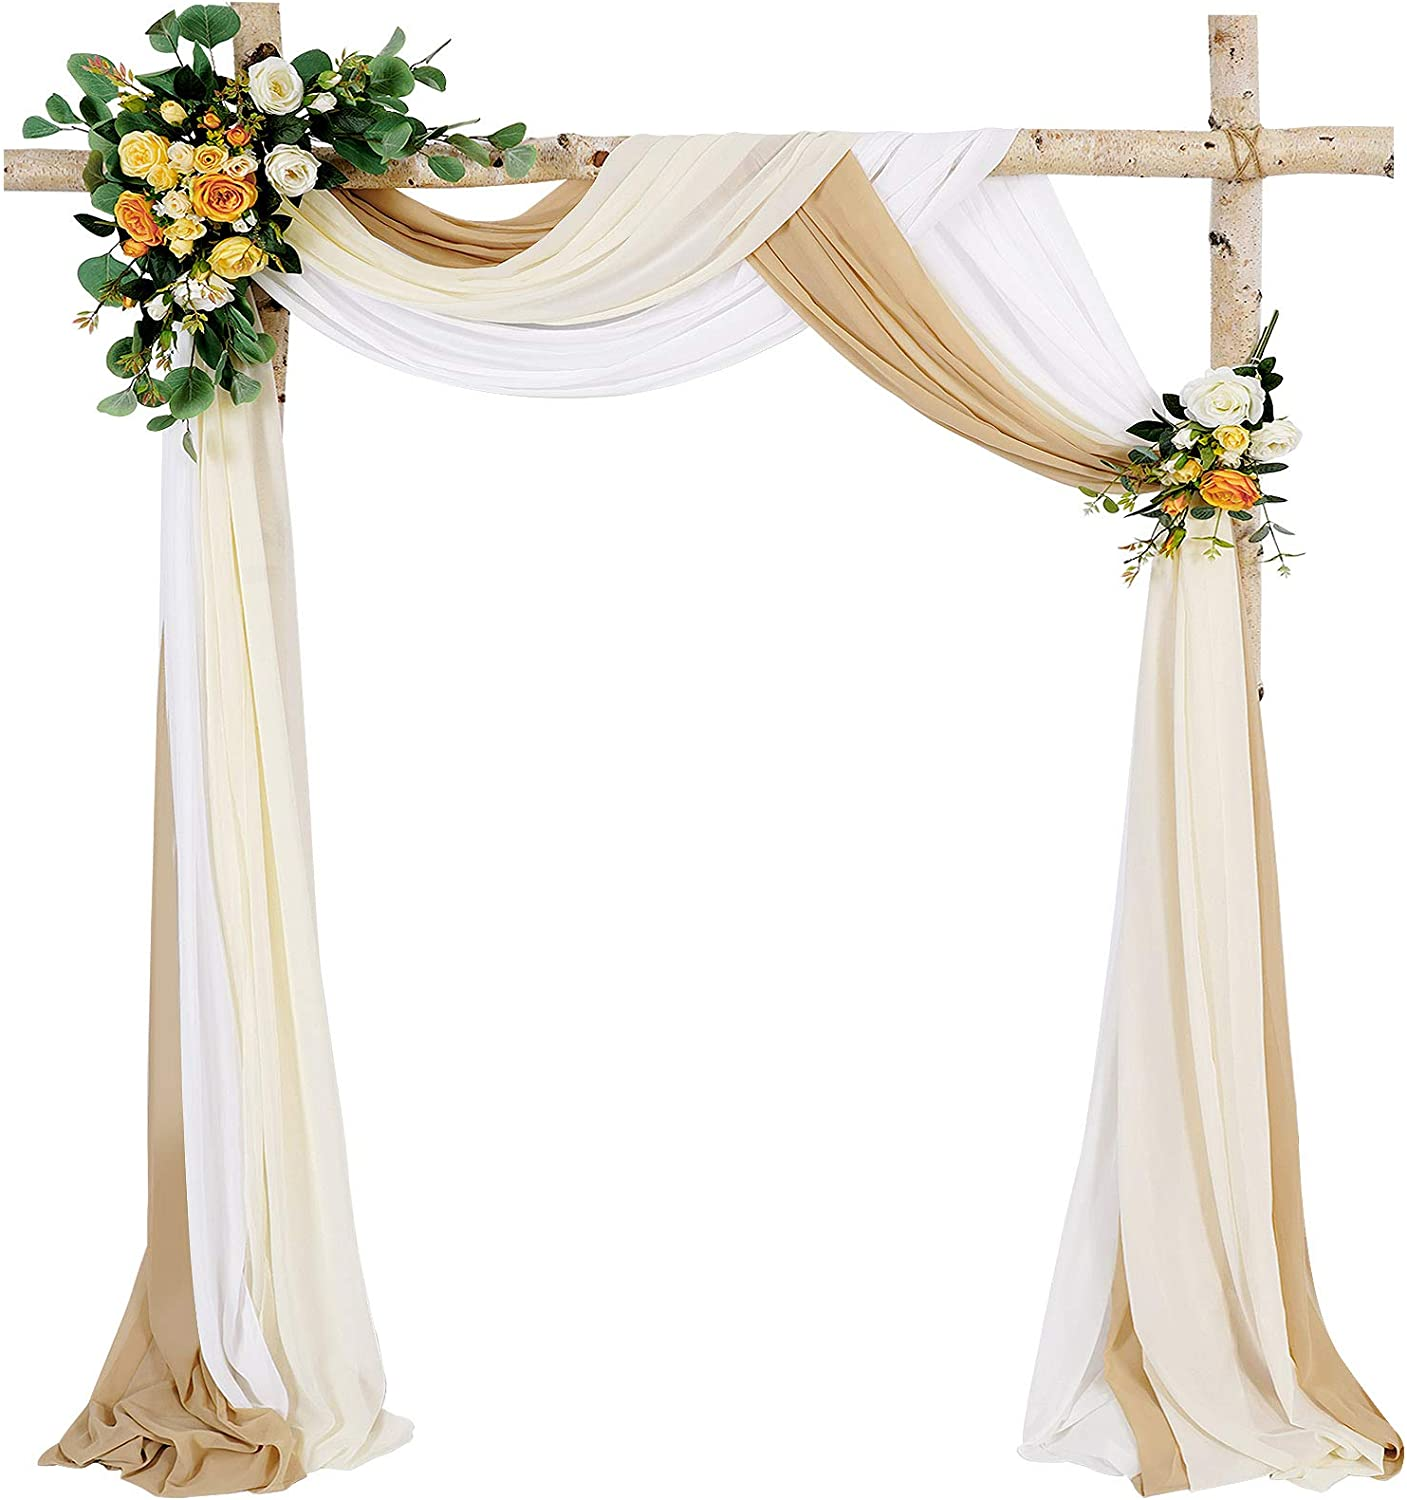 Wedding Arch Outdoor Indoor White Sheer Backdrop Curtain 3 Panels Chiffon Fabric Drapery 6 Yards Nude and Cream Party Background Drapes Wedding Decoration